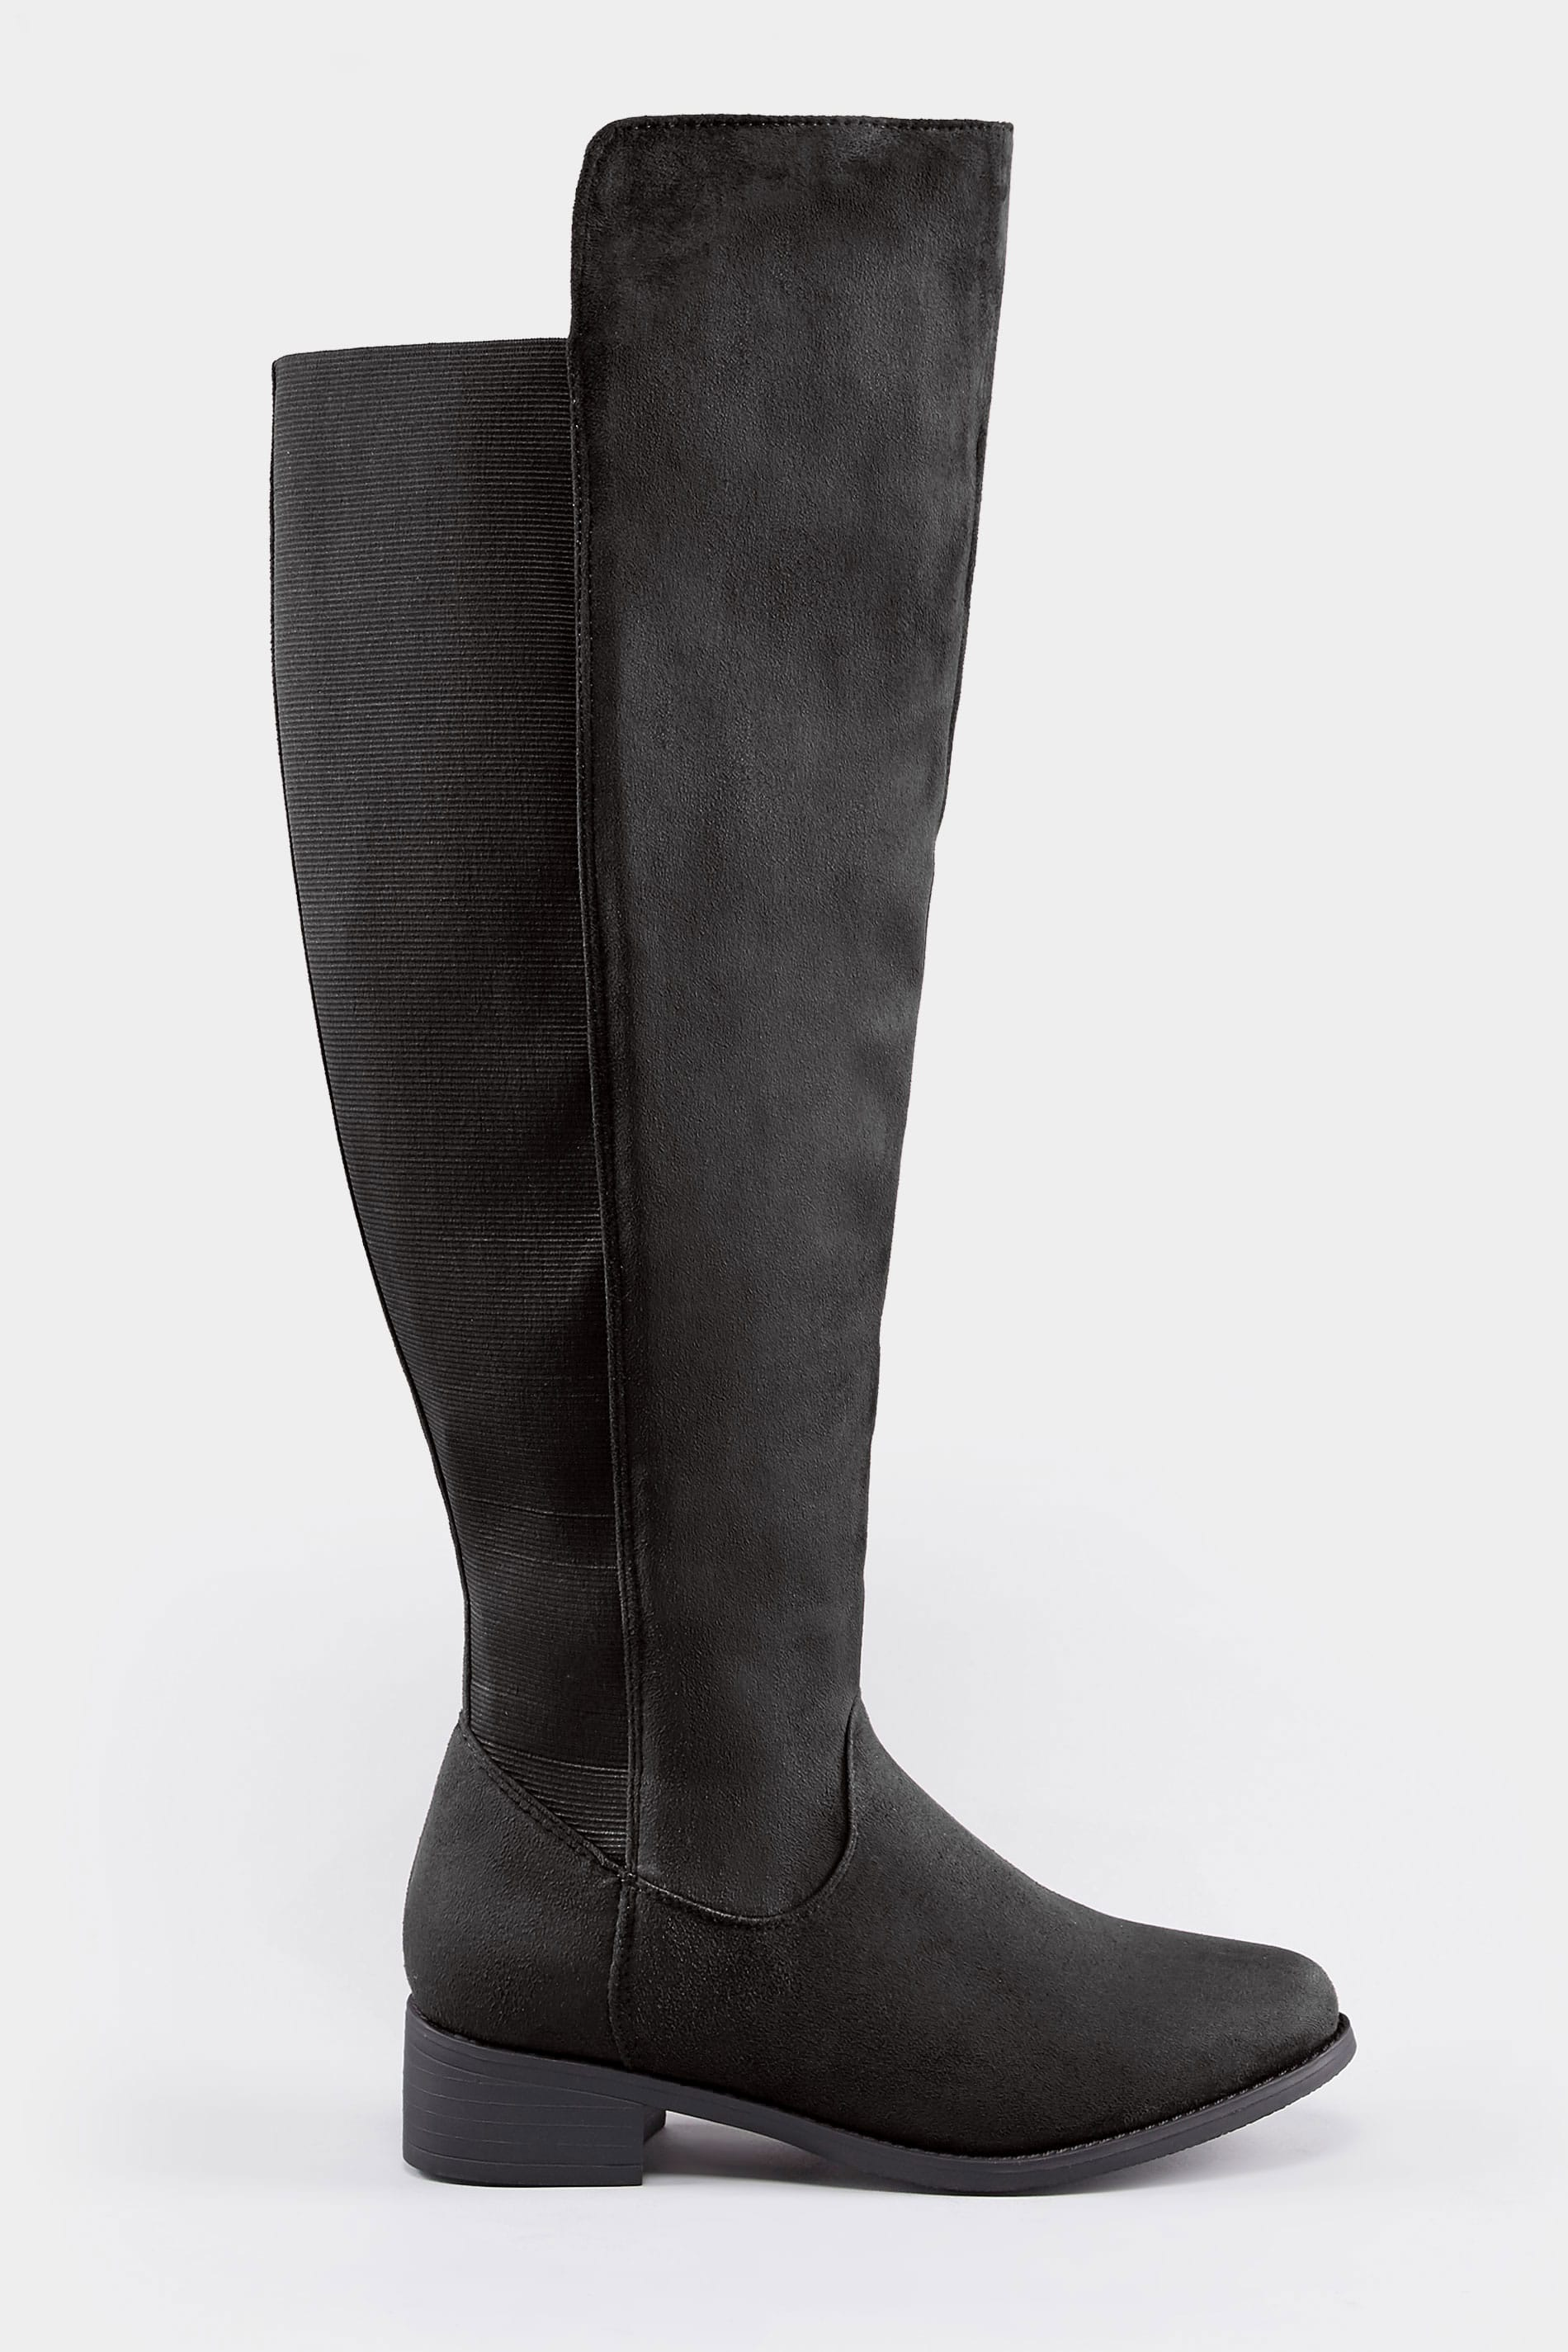 e16376ad1d1 Black XL Calf Over The Knee Boots With Stretch Panel In EEE Fit